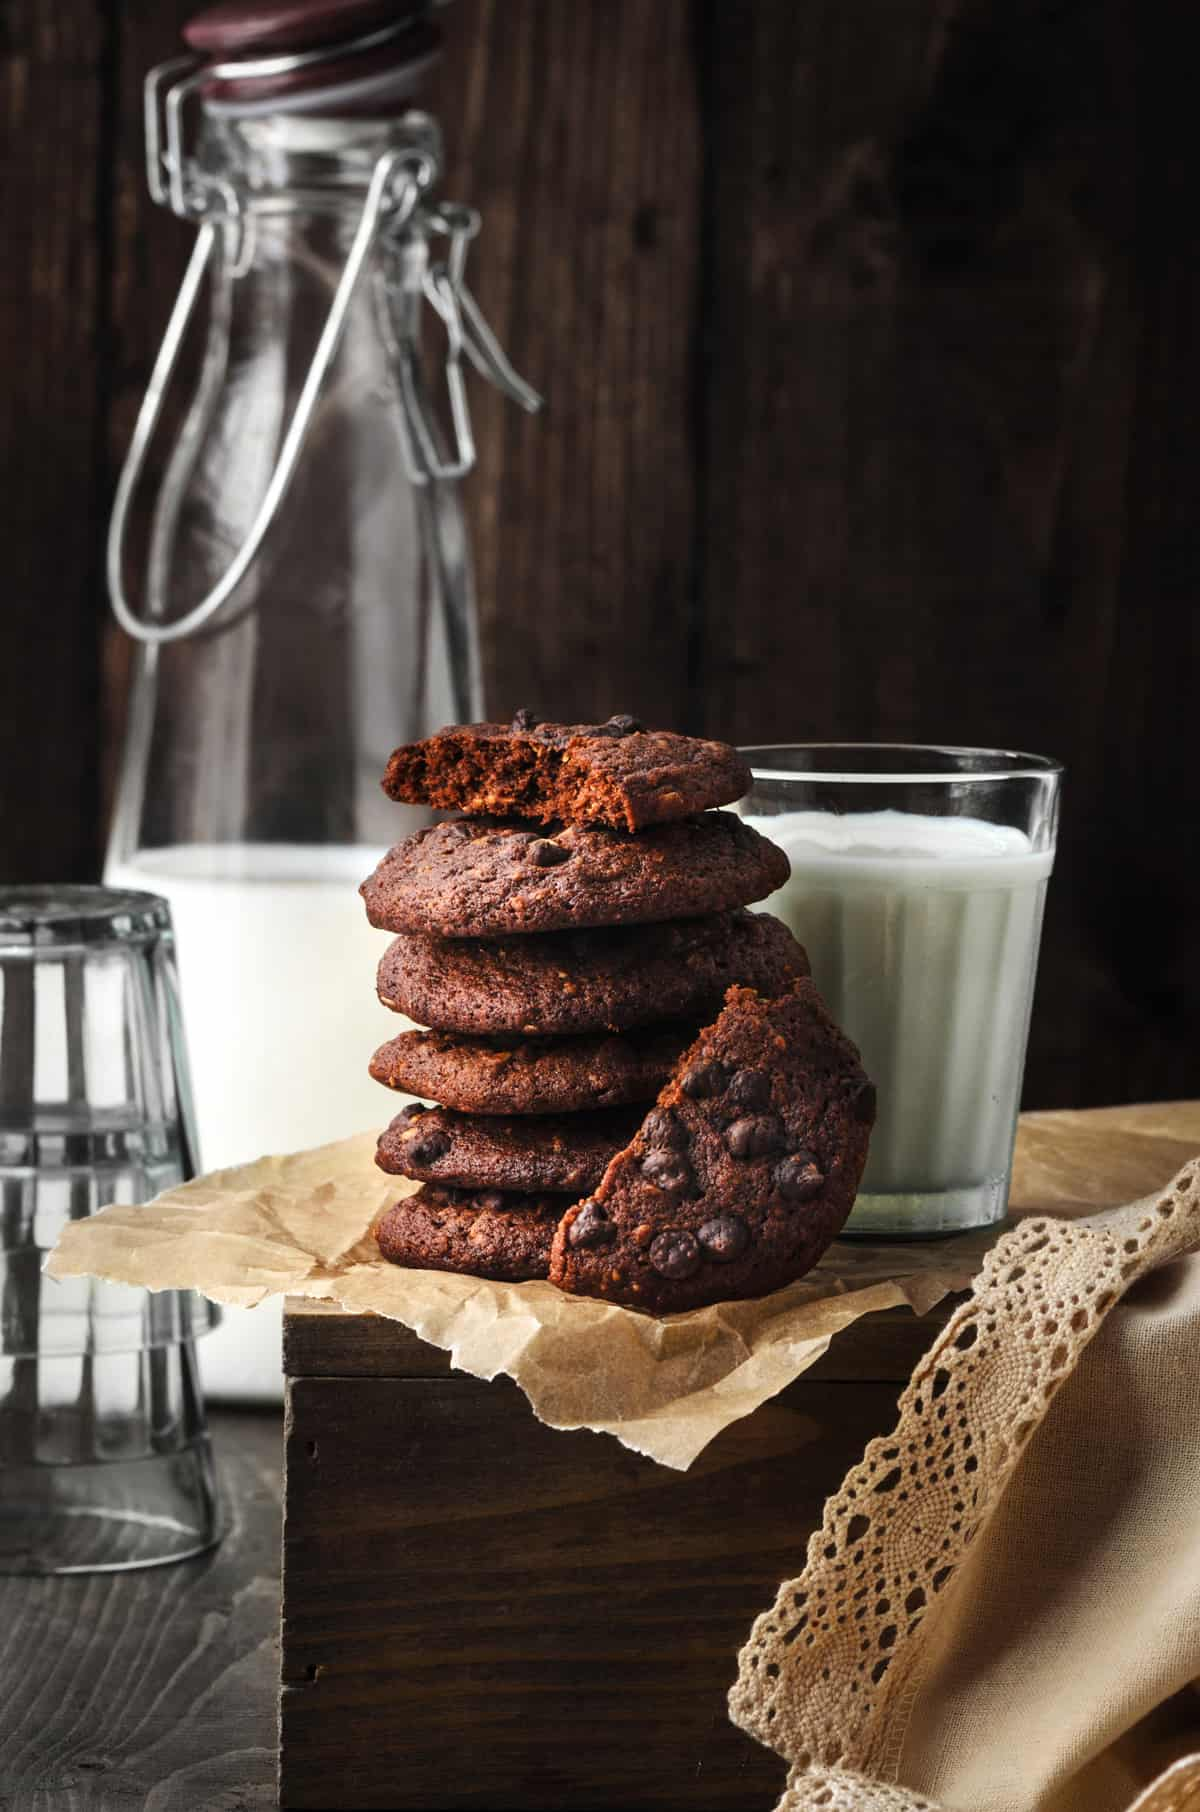 Stacked chocolate chip cookies with a glass of milk bottle and glass at the back.